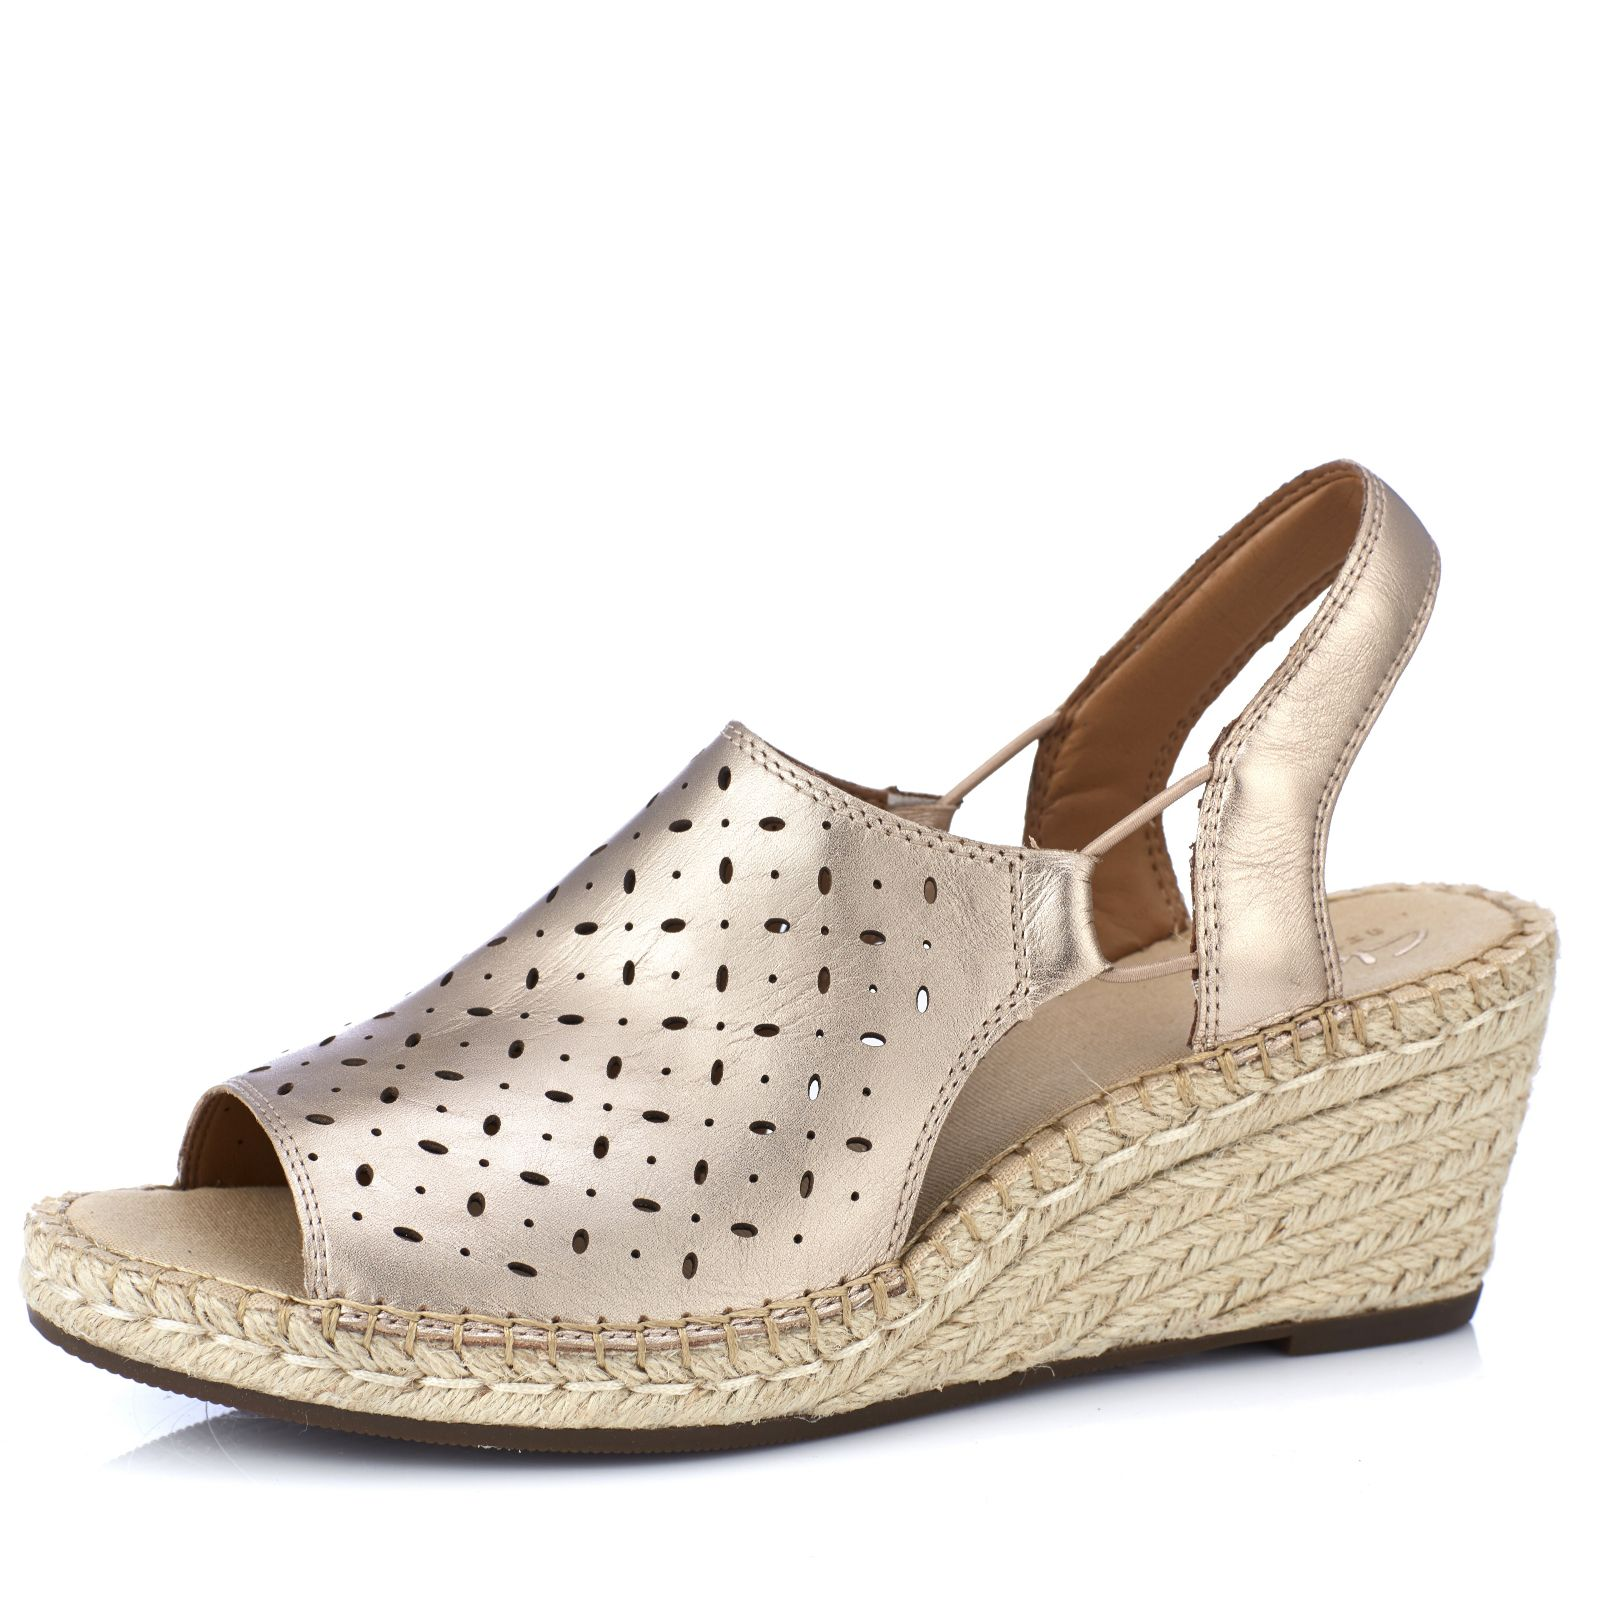 250f02059a65 Clarks Artisan Petrina Gail Leather Espadrille Wedge Sandal ...